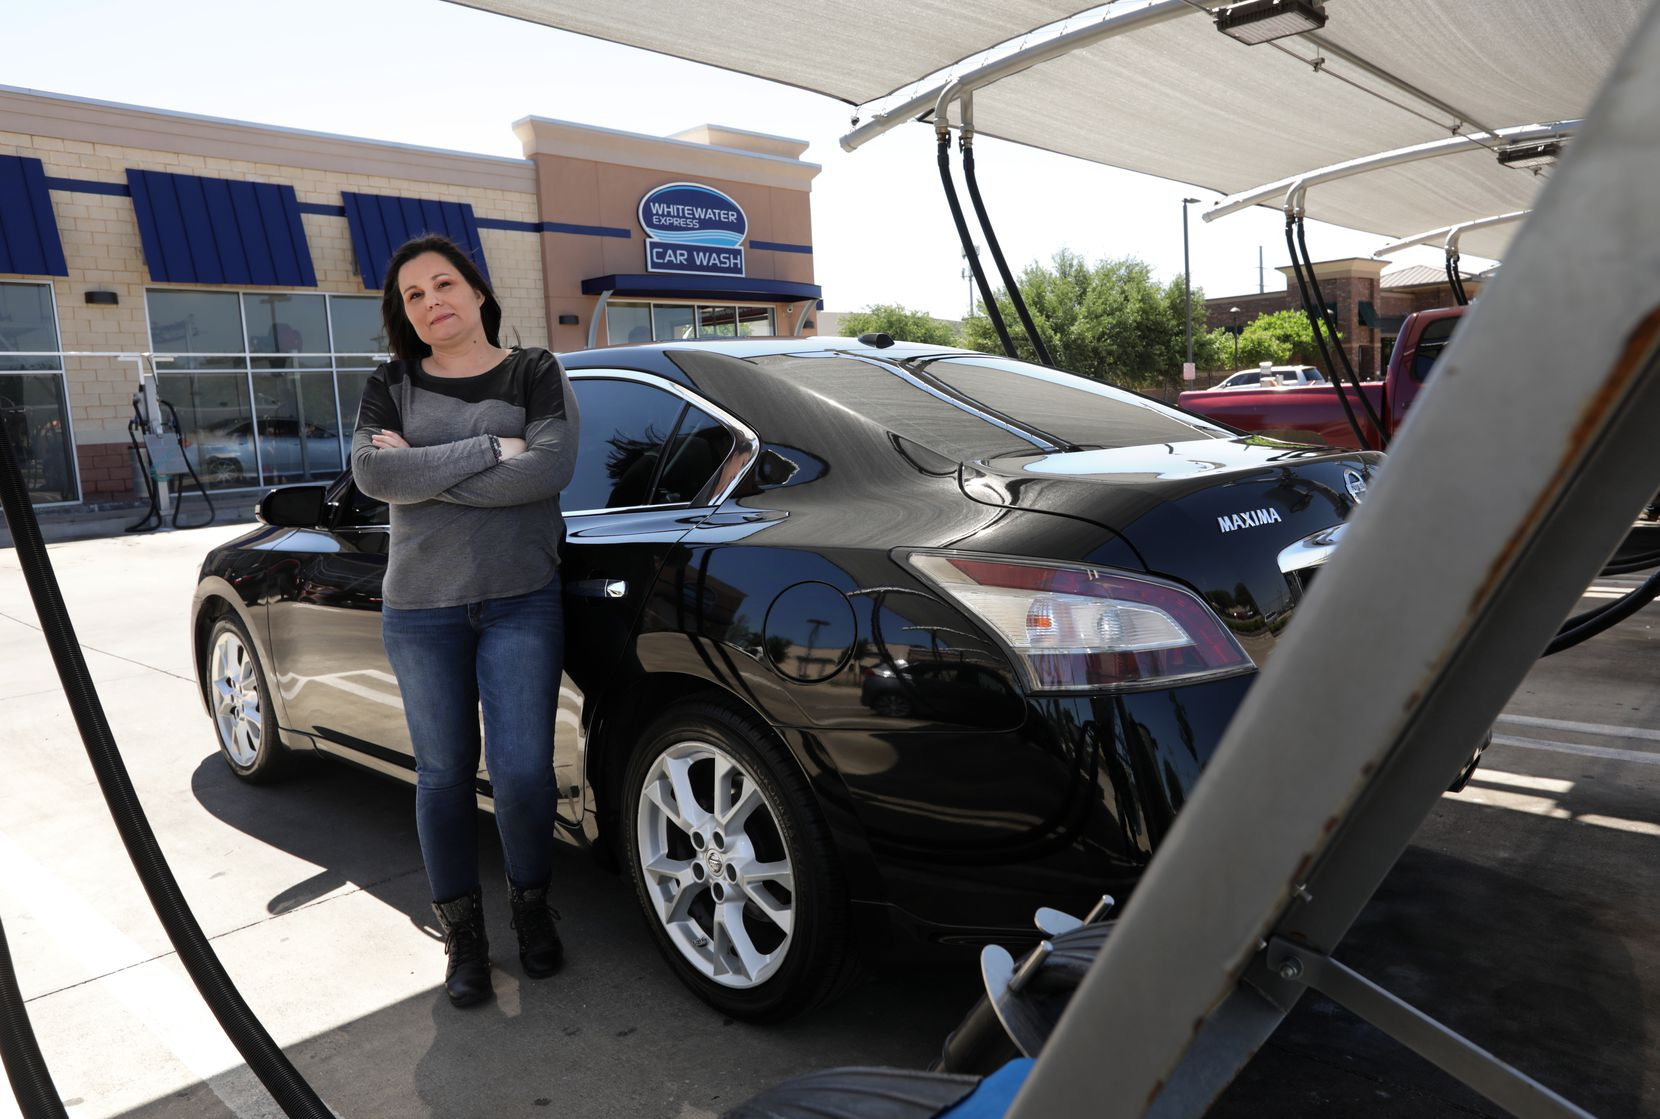 Trisha Musgrave made less than $4.20 on her last day of driving for Uber six weeks ago when she stopped getting calls for rides. She remains a loyal patron of WhiteWater Express Car Wash in Plano, which she uses to keep her car clean as a full-time ride-sharing driver.